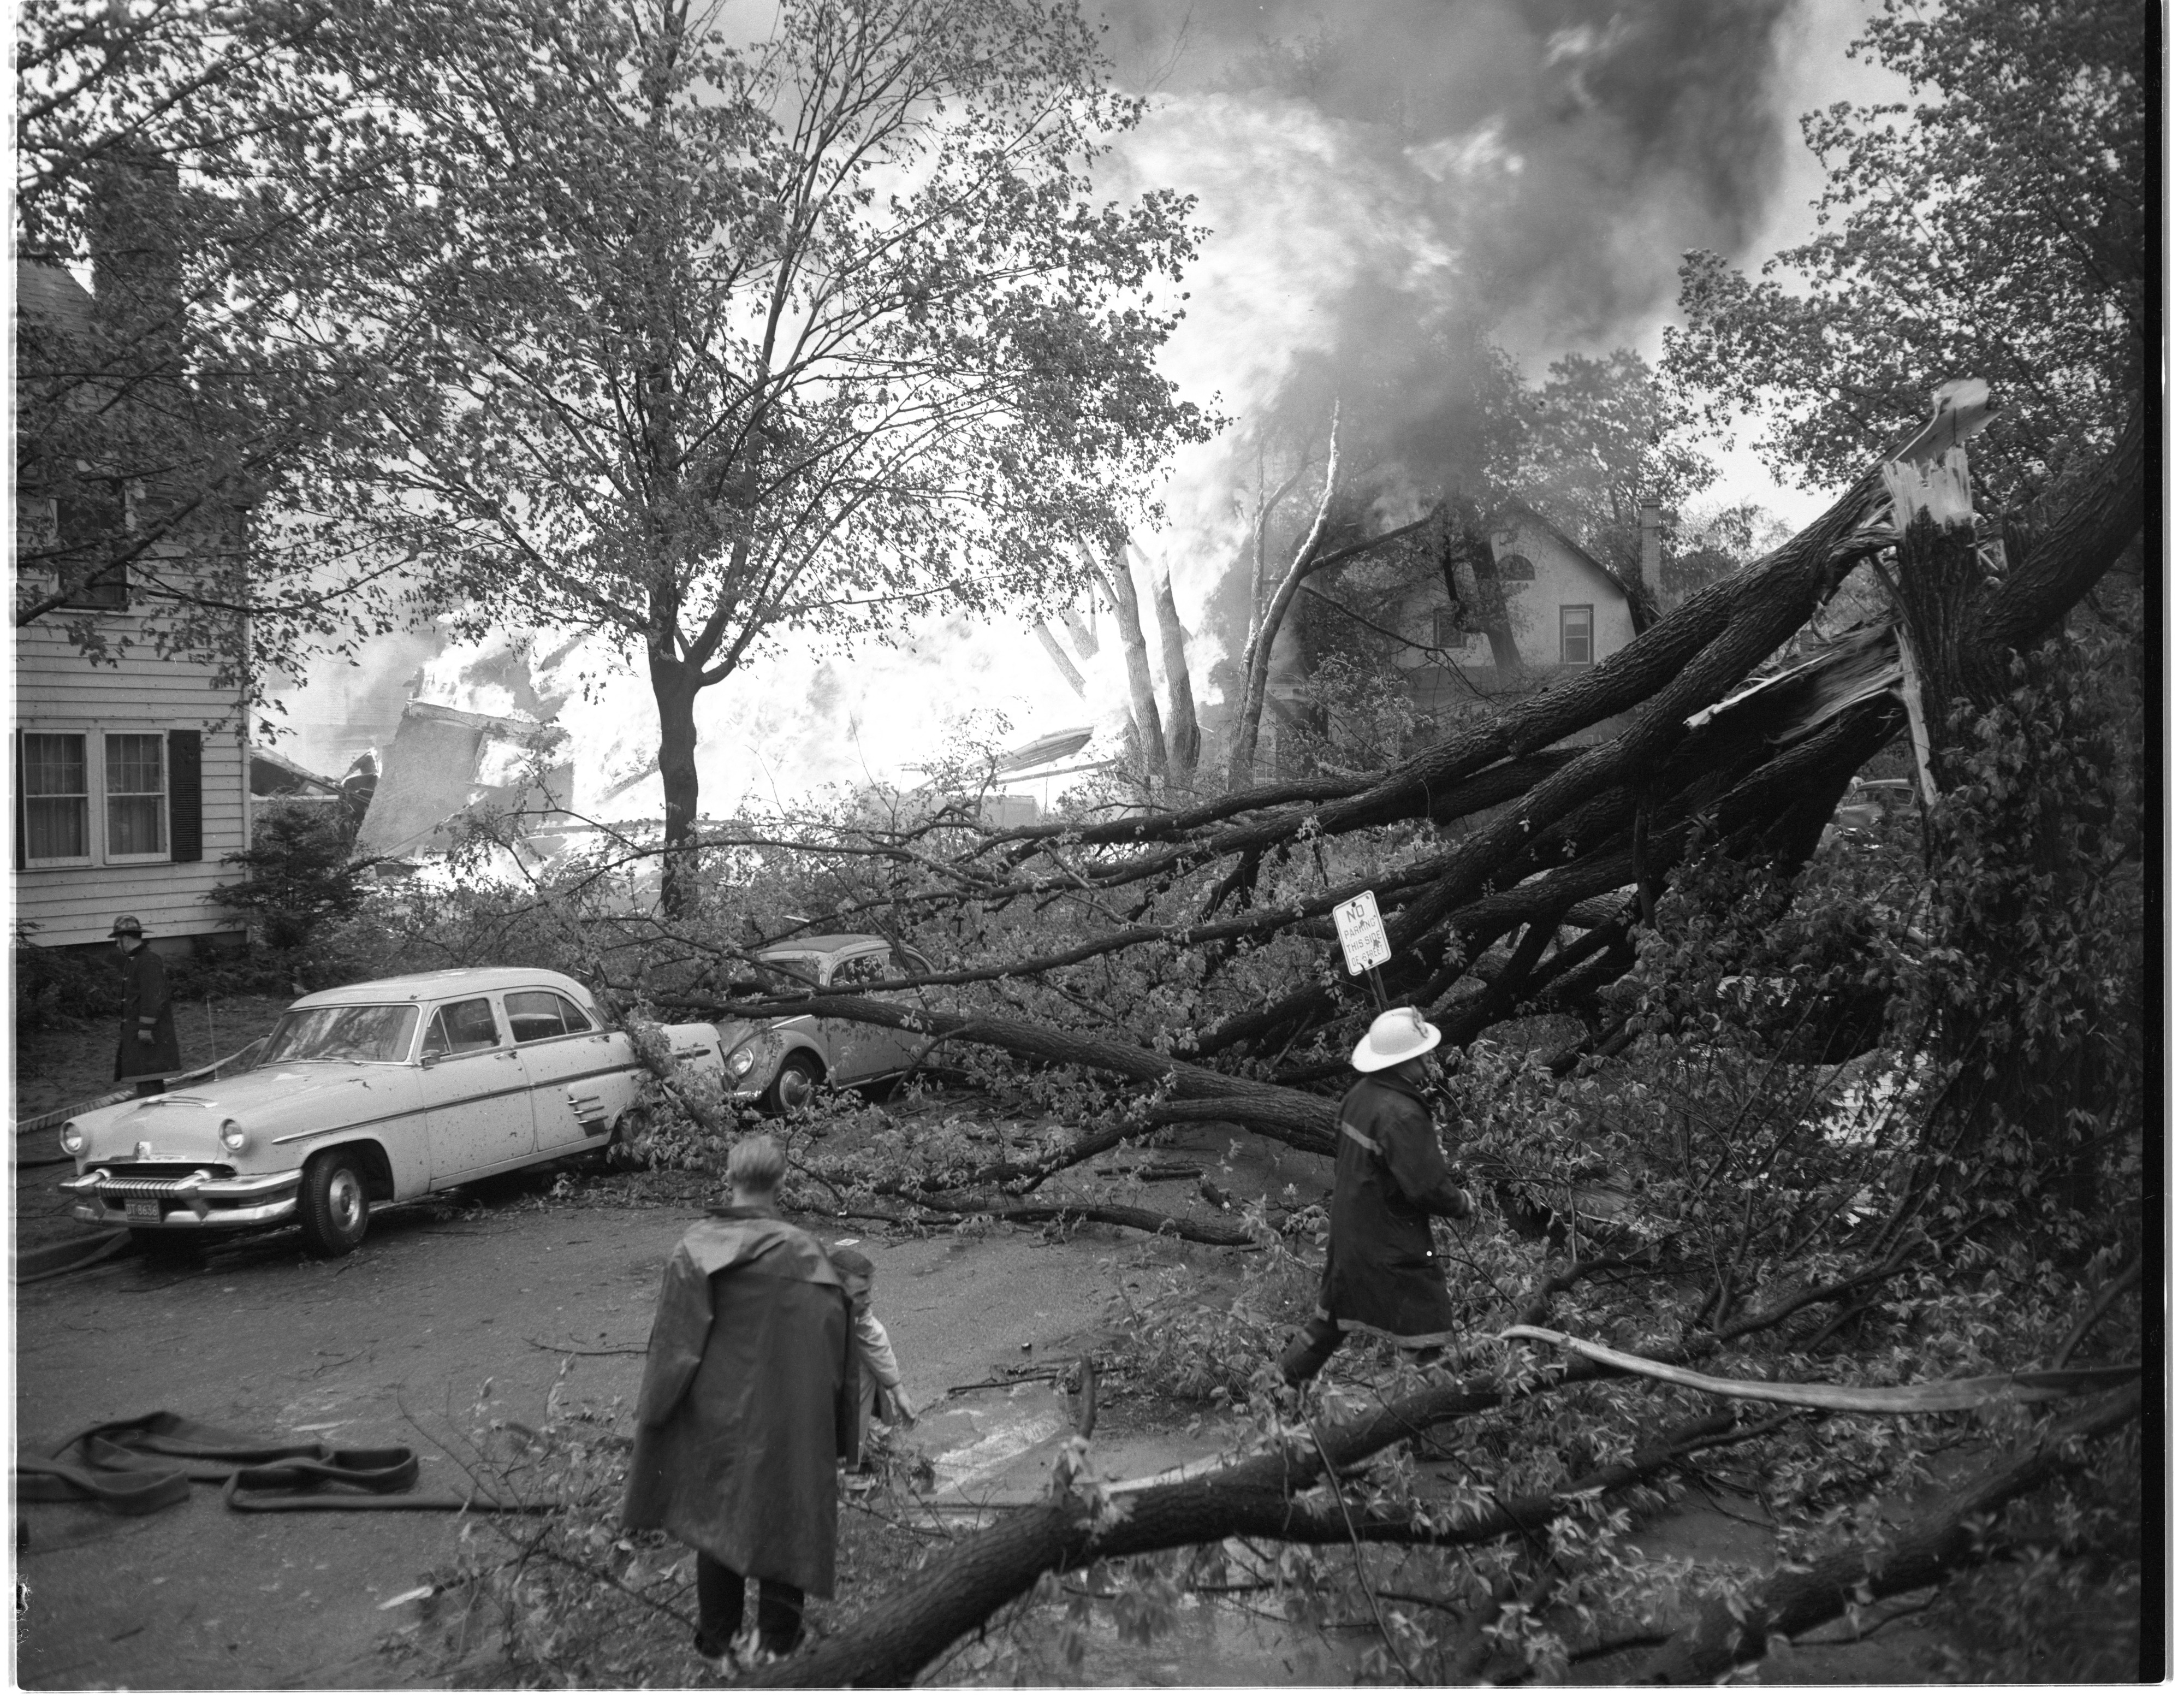 The Guthe Home At 845 Brookwood Place Burns After A Gas Explosion During The Windstorm, May 1959 image